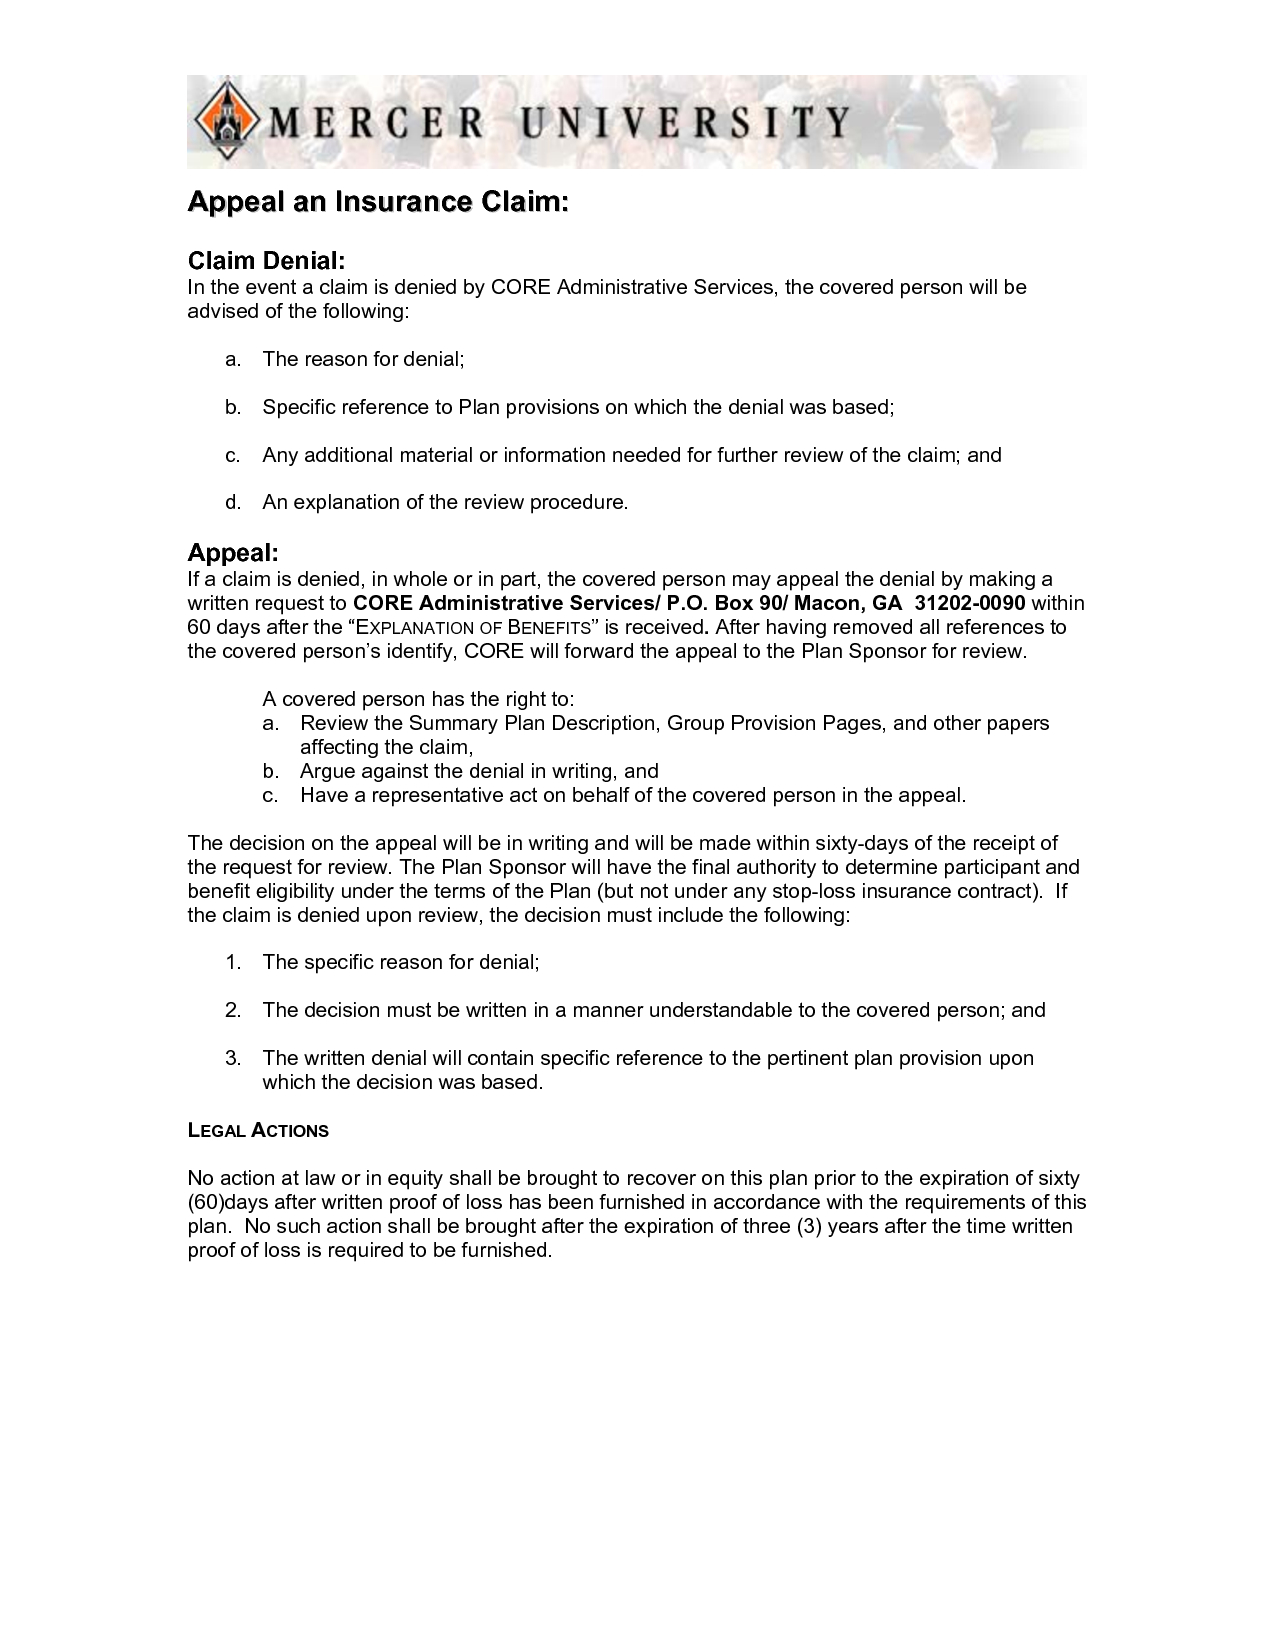 Appeal Letter Sample Medical Claim And Insurance Denial Form Regarding Insurance Denial Appeal Letter Template